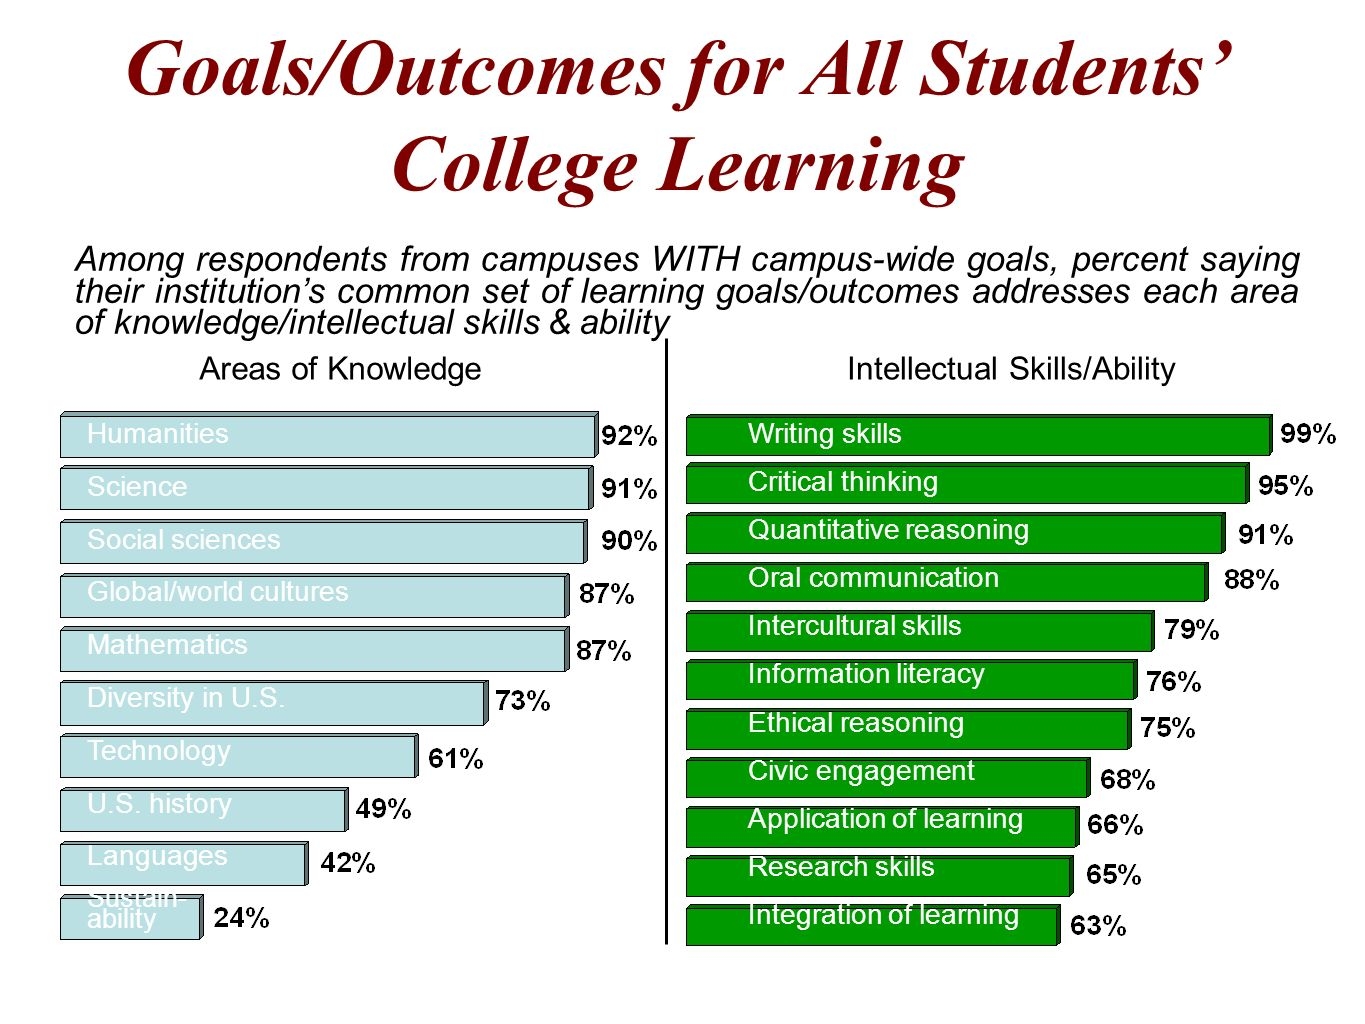 Goals/Outcomes for All Students' College Learning